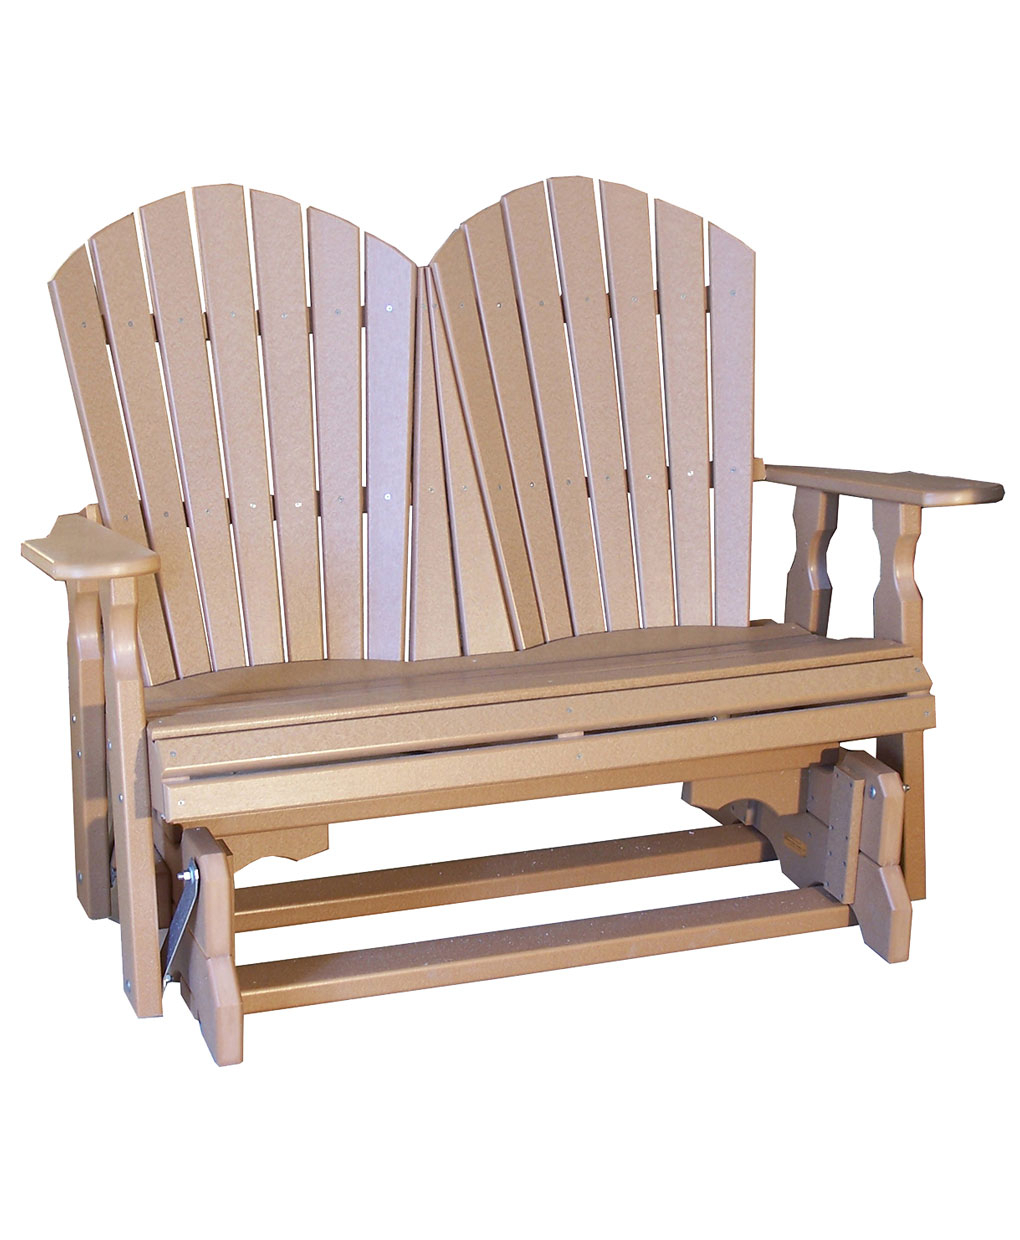 Poly Classic Loveseat Glider Intended For Classic Adirondack Glider Benches (View 9 of 25)